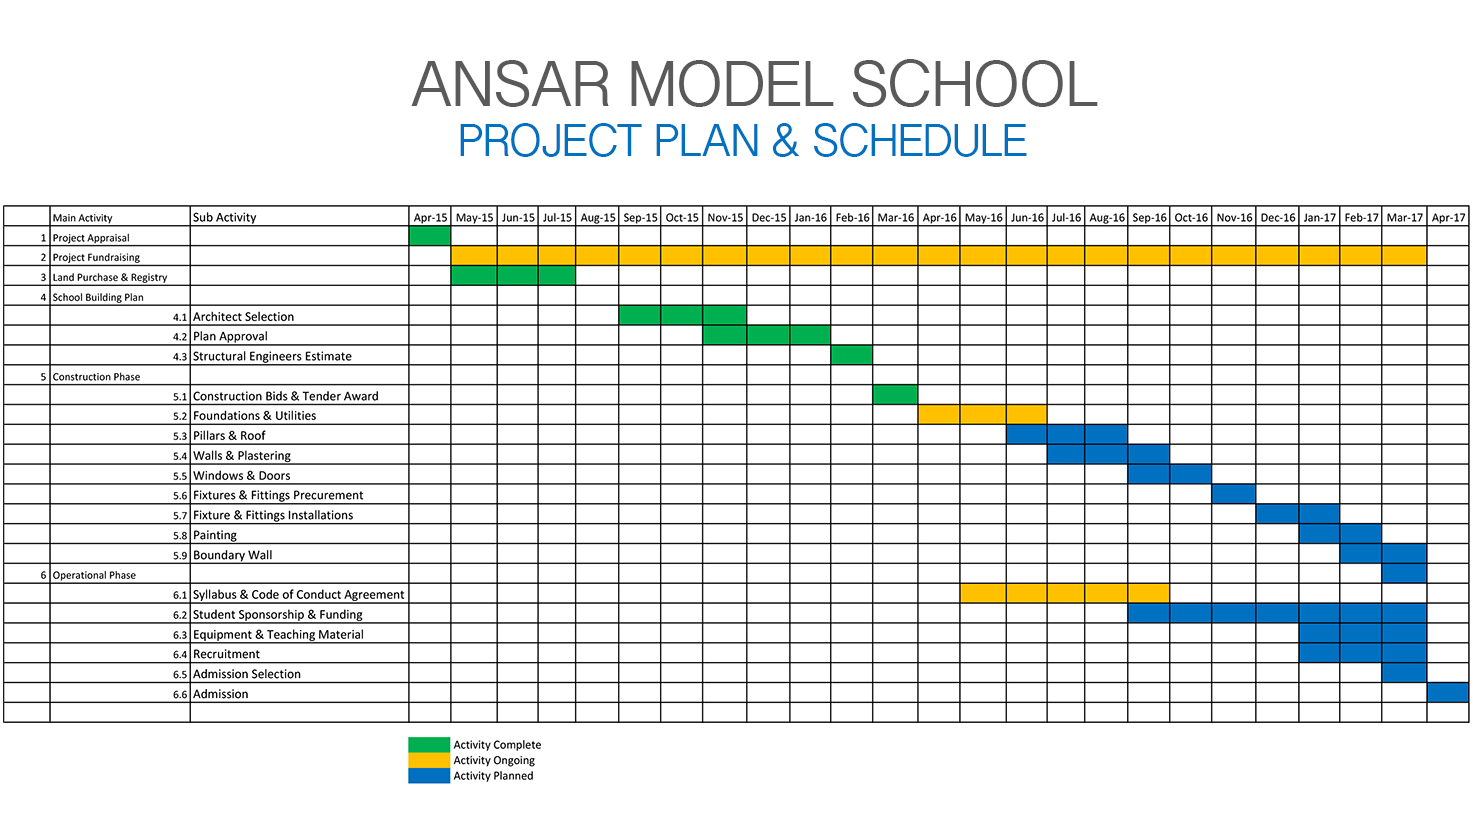 high level project timeline template - ansar model school